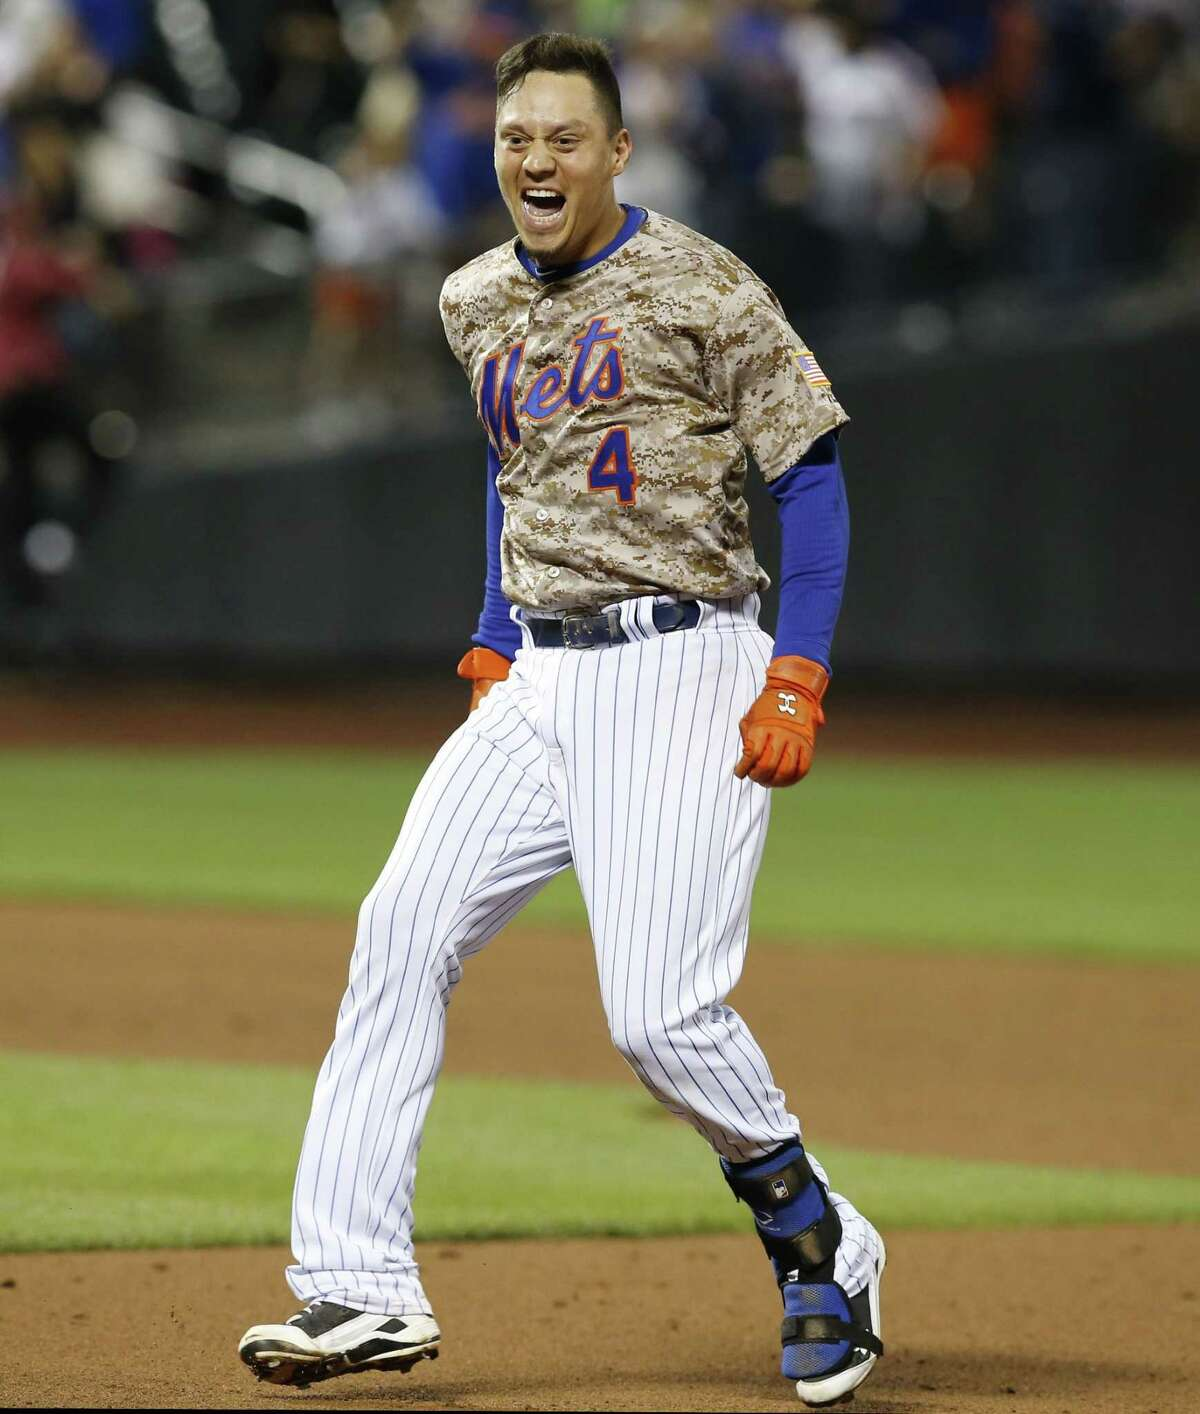 The Mets Wilmer Flores (4) reacts after hitting an 11th-inning, walk-off, RBI single against the Blue Jays on Monday.